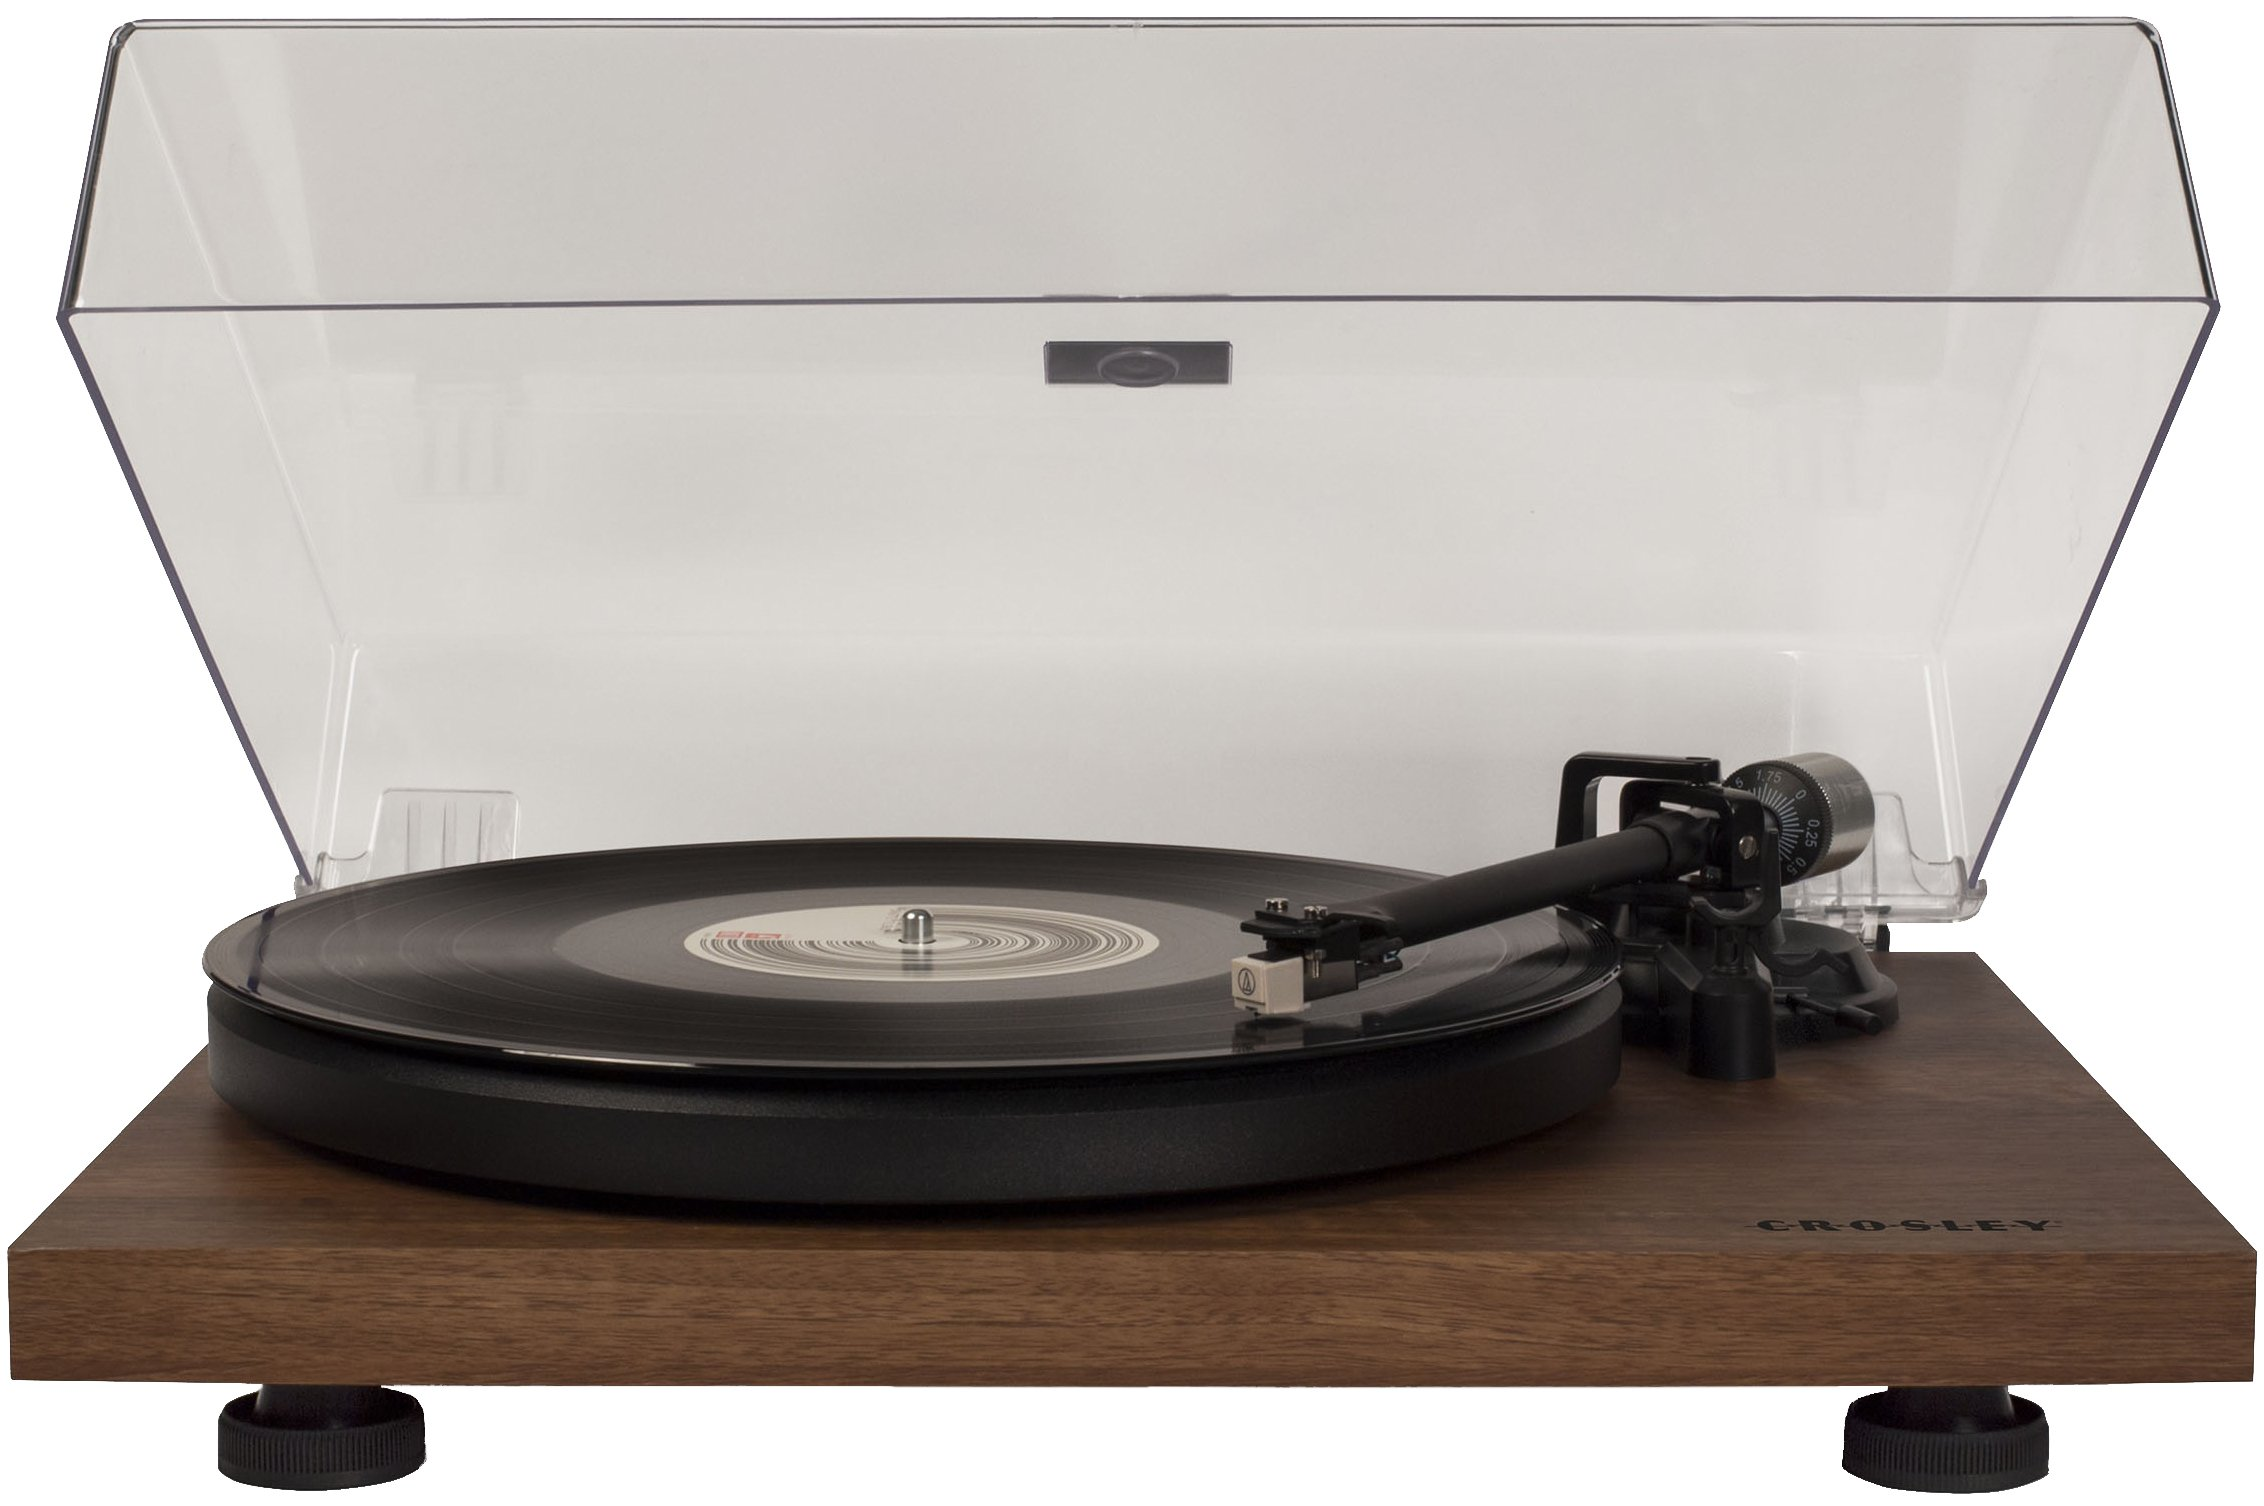 Crosley C6 Belt-Drive Turntable with Built-in Preamp and Adjustable Tone Arm, Walnut